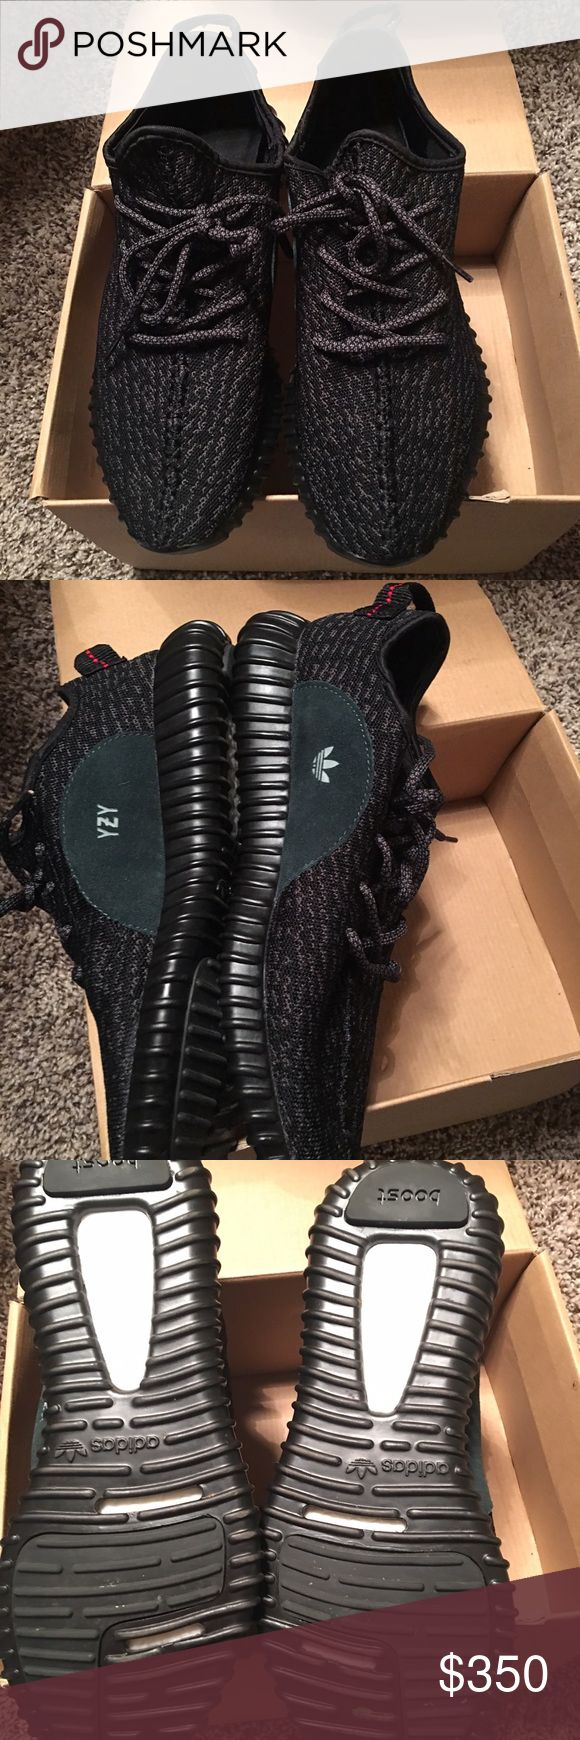 Yeezy boost 350 black pirate Used couple of times its original you can see from the 7 dots at the bottom the price 350 or best offer! more photo available upon request Yeezy Shoes Sneakers